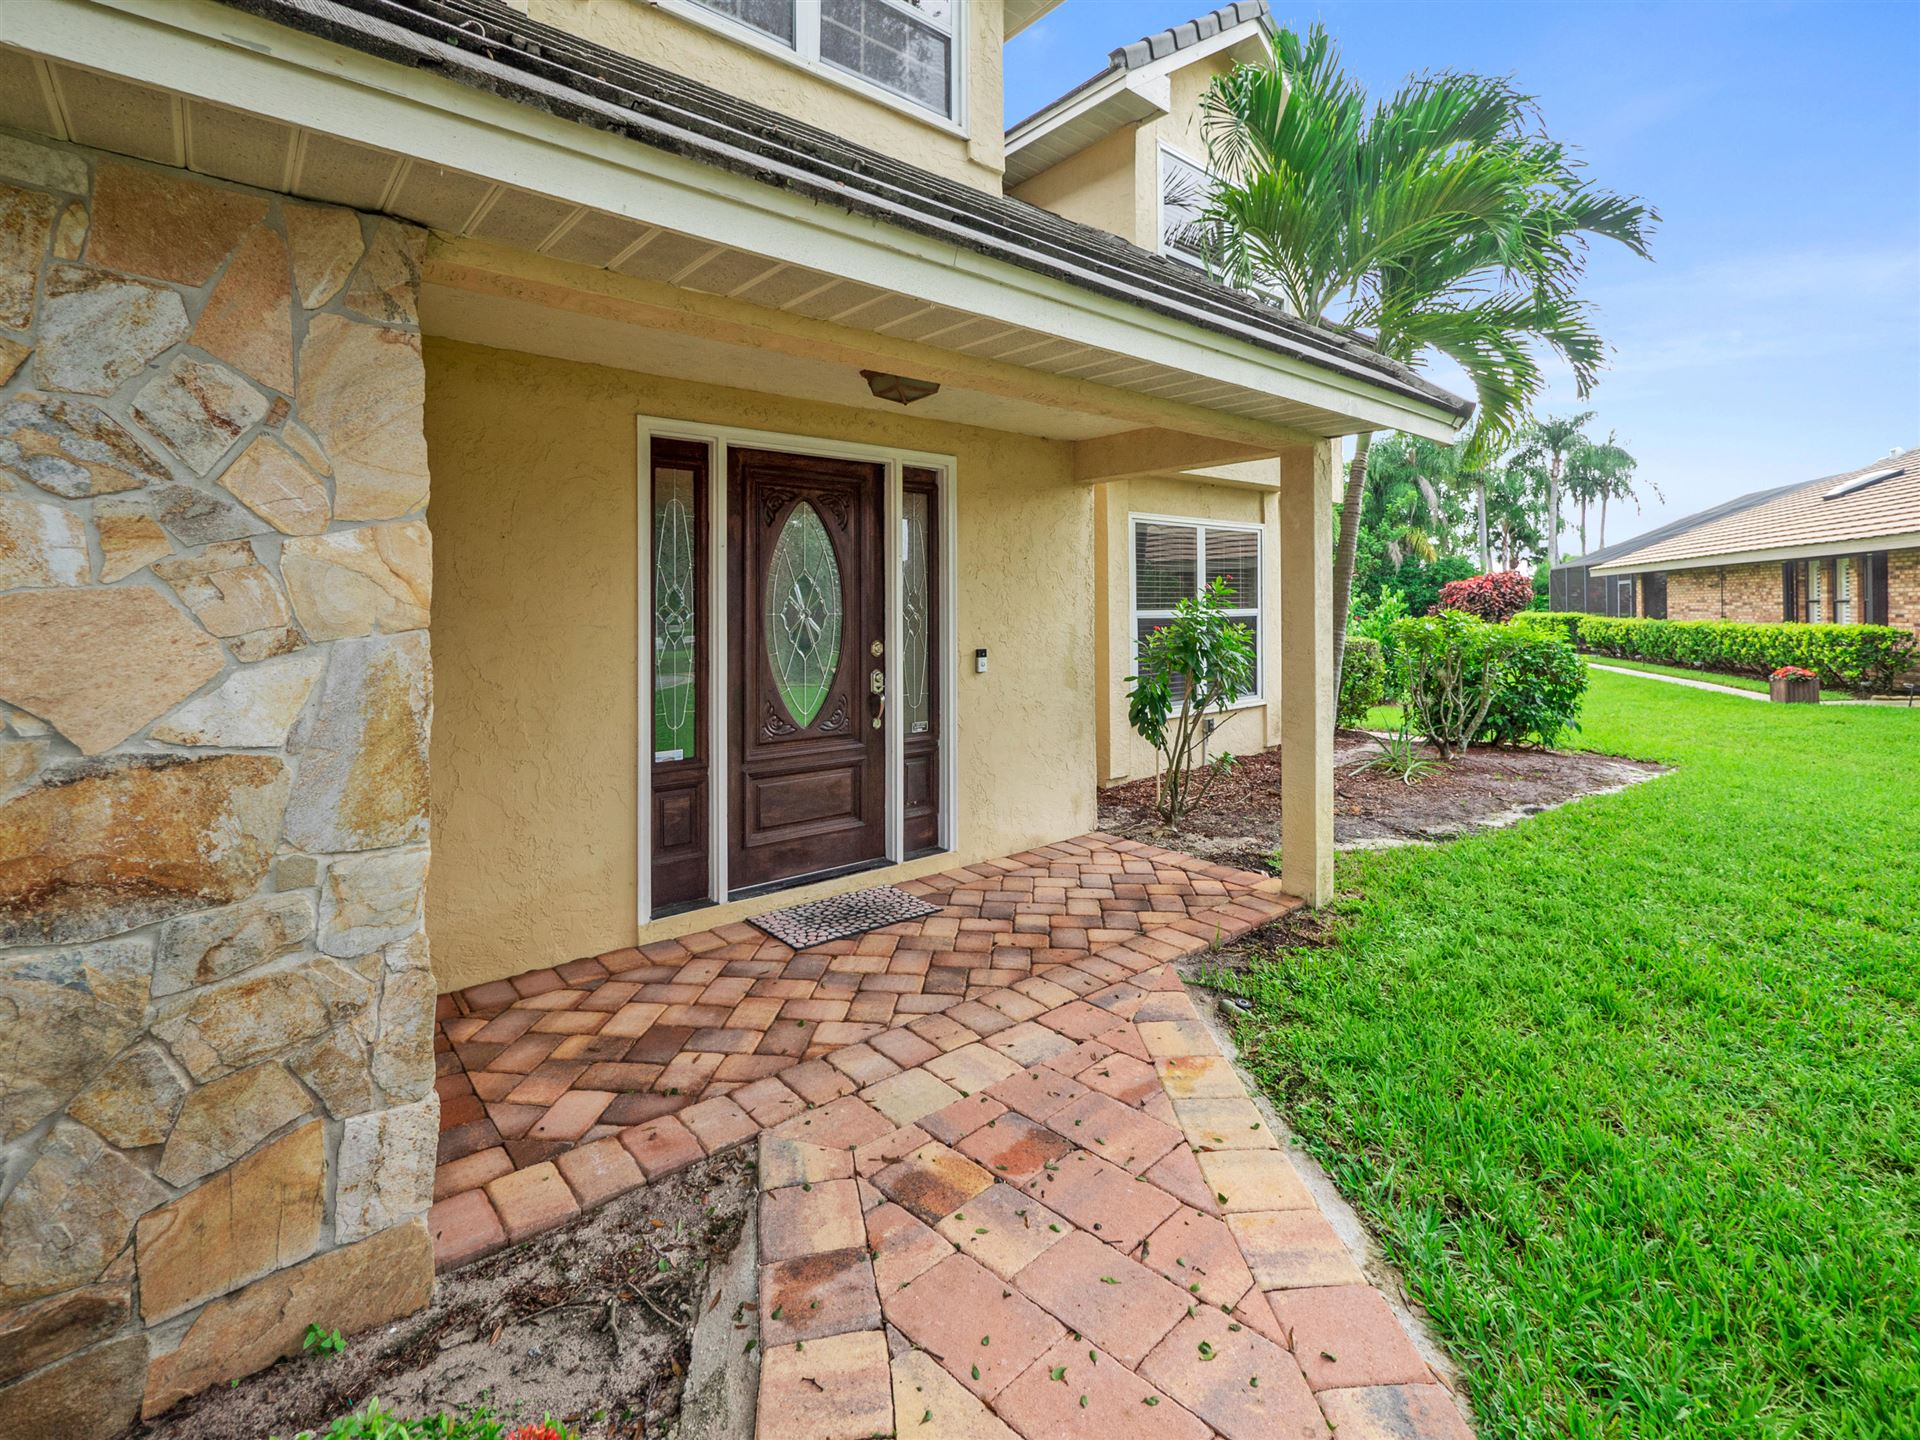 Photo of 1215 SW Paradise Cove, Port Saint Lucie, FL 34986 (MLS # RX-10662216)